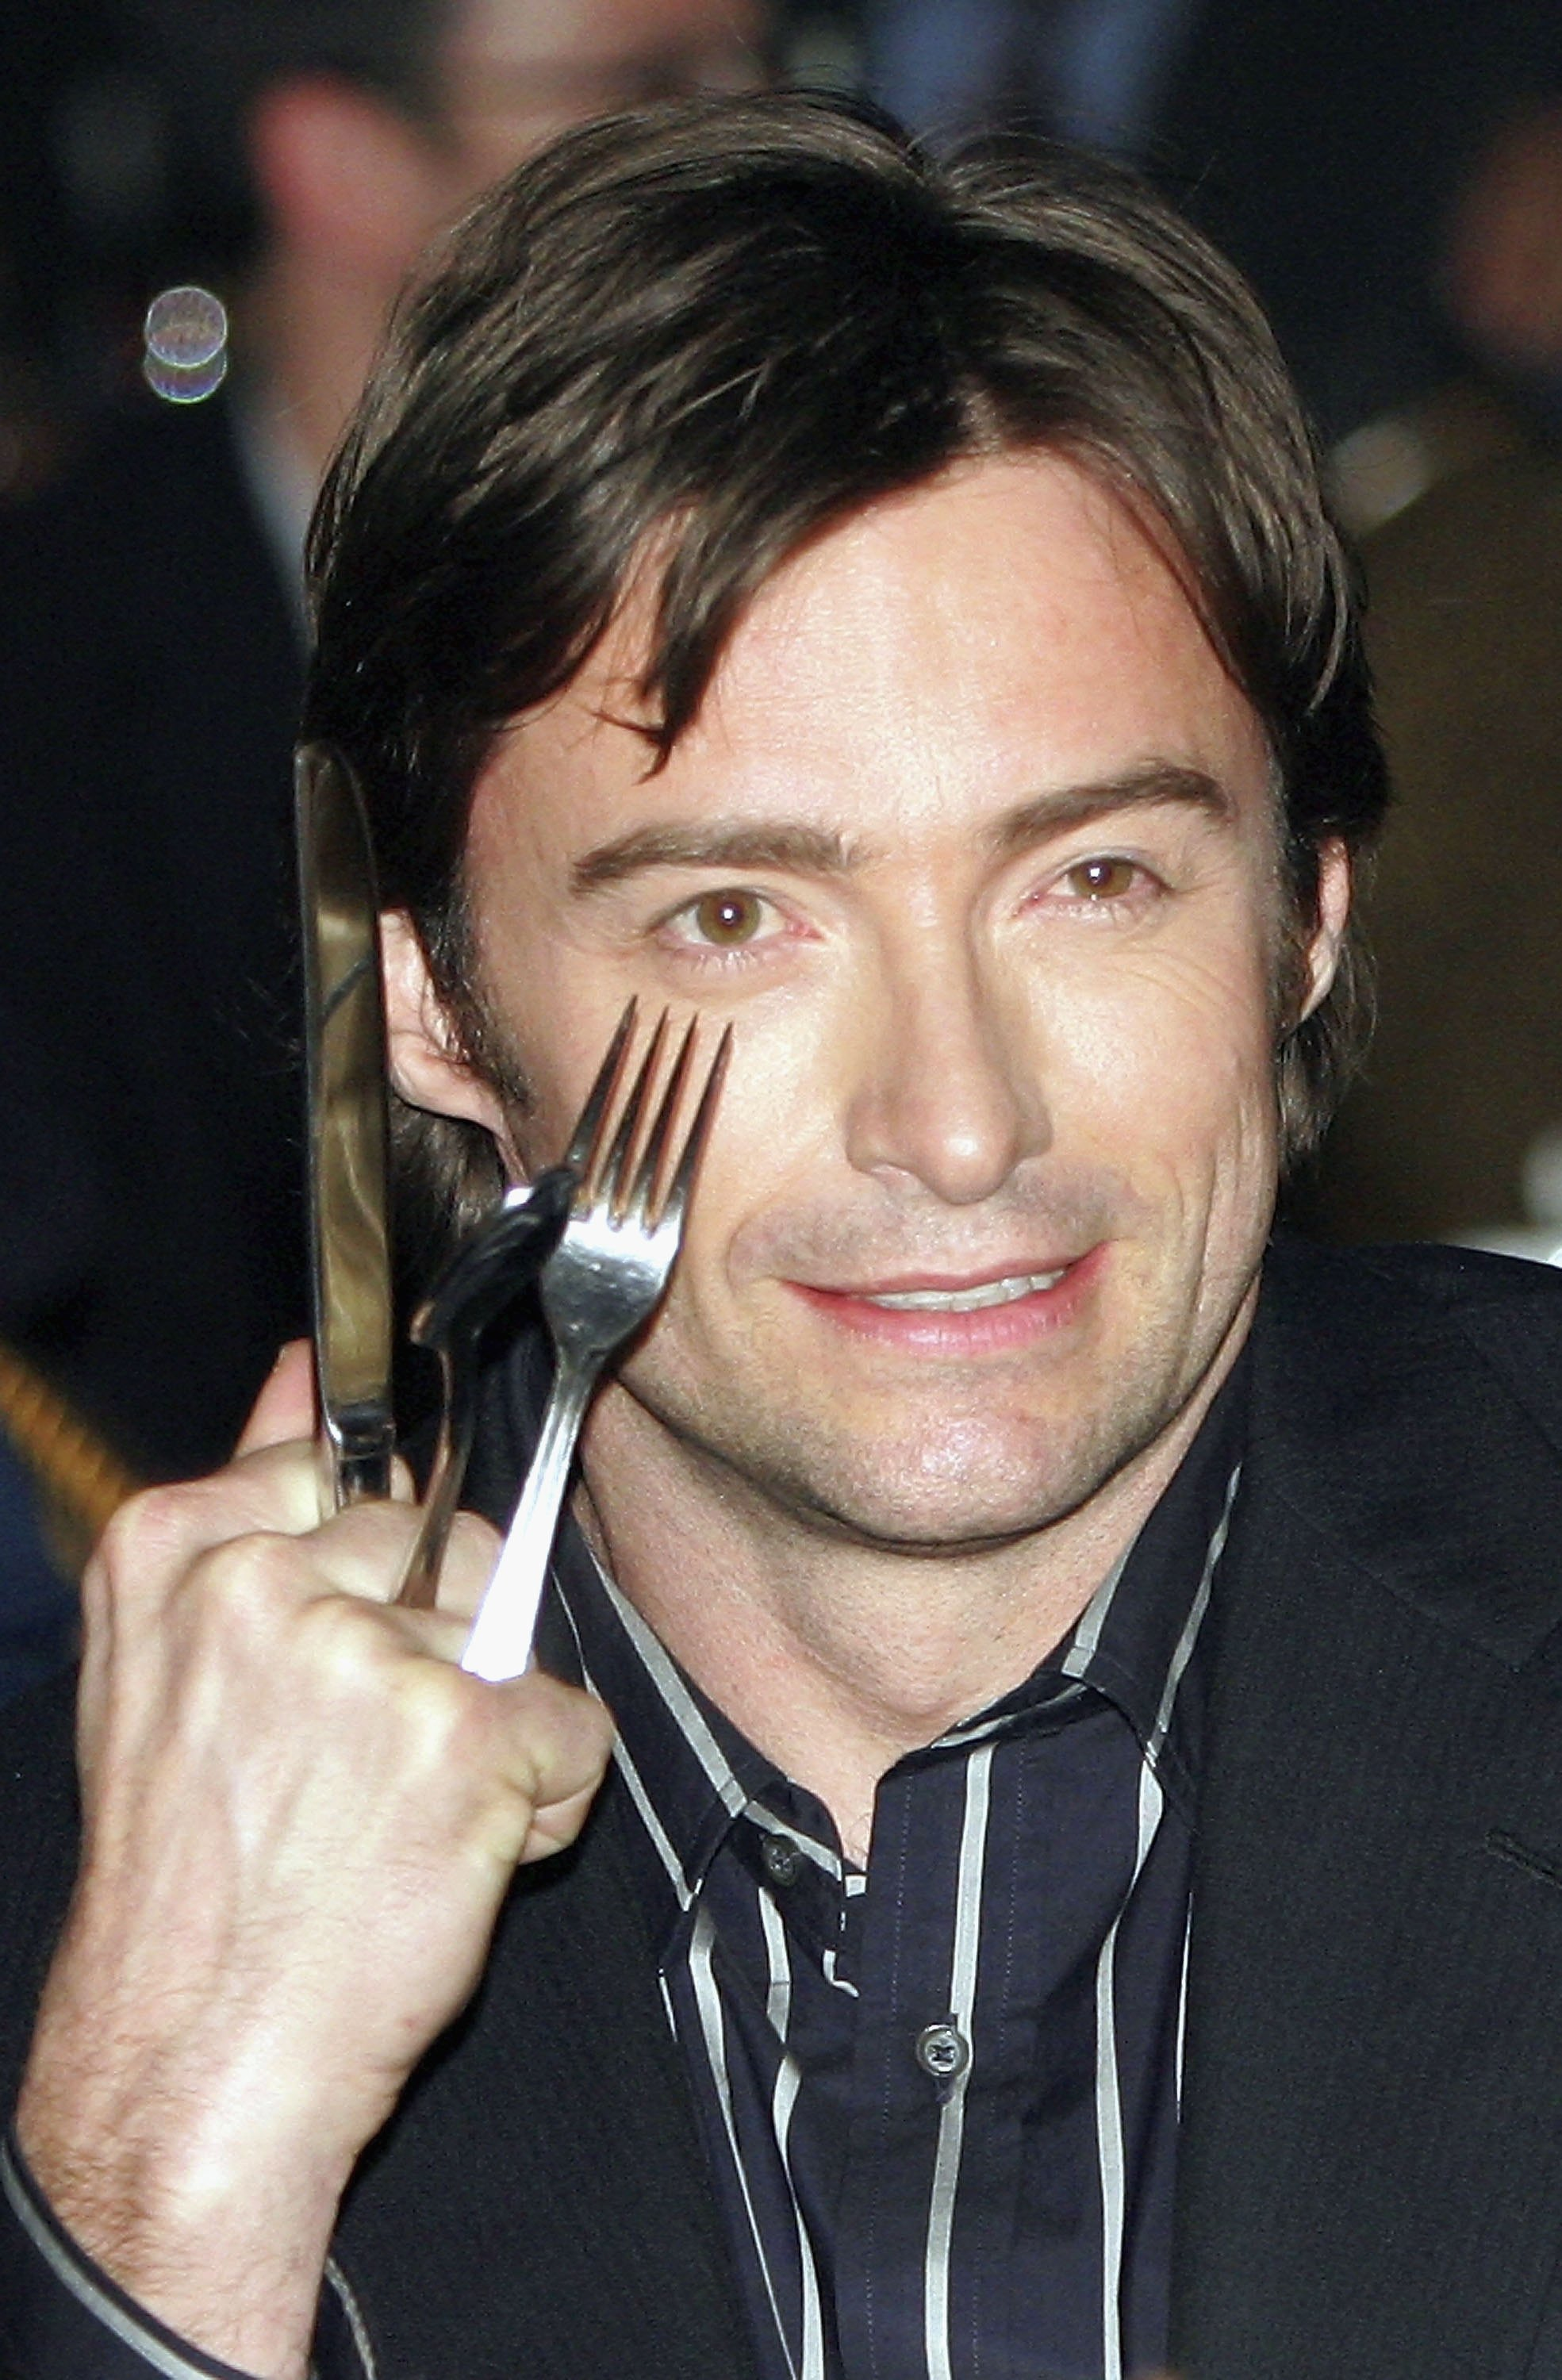 Actor Hugh Jackman jokes about his Wolverine character in the audience during the final banquet and awards ceremony for ShoWest 2006, the official convention of the National Association of Theatre Owners March 16, 2006, in Las Vegas, Nevada. (Getty Images)